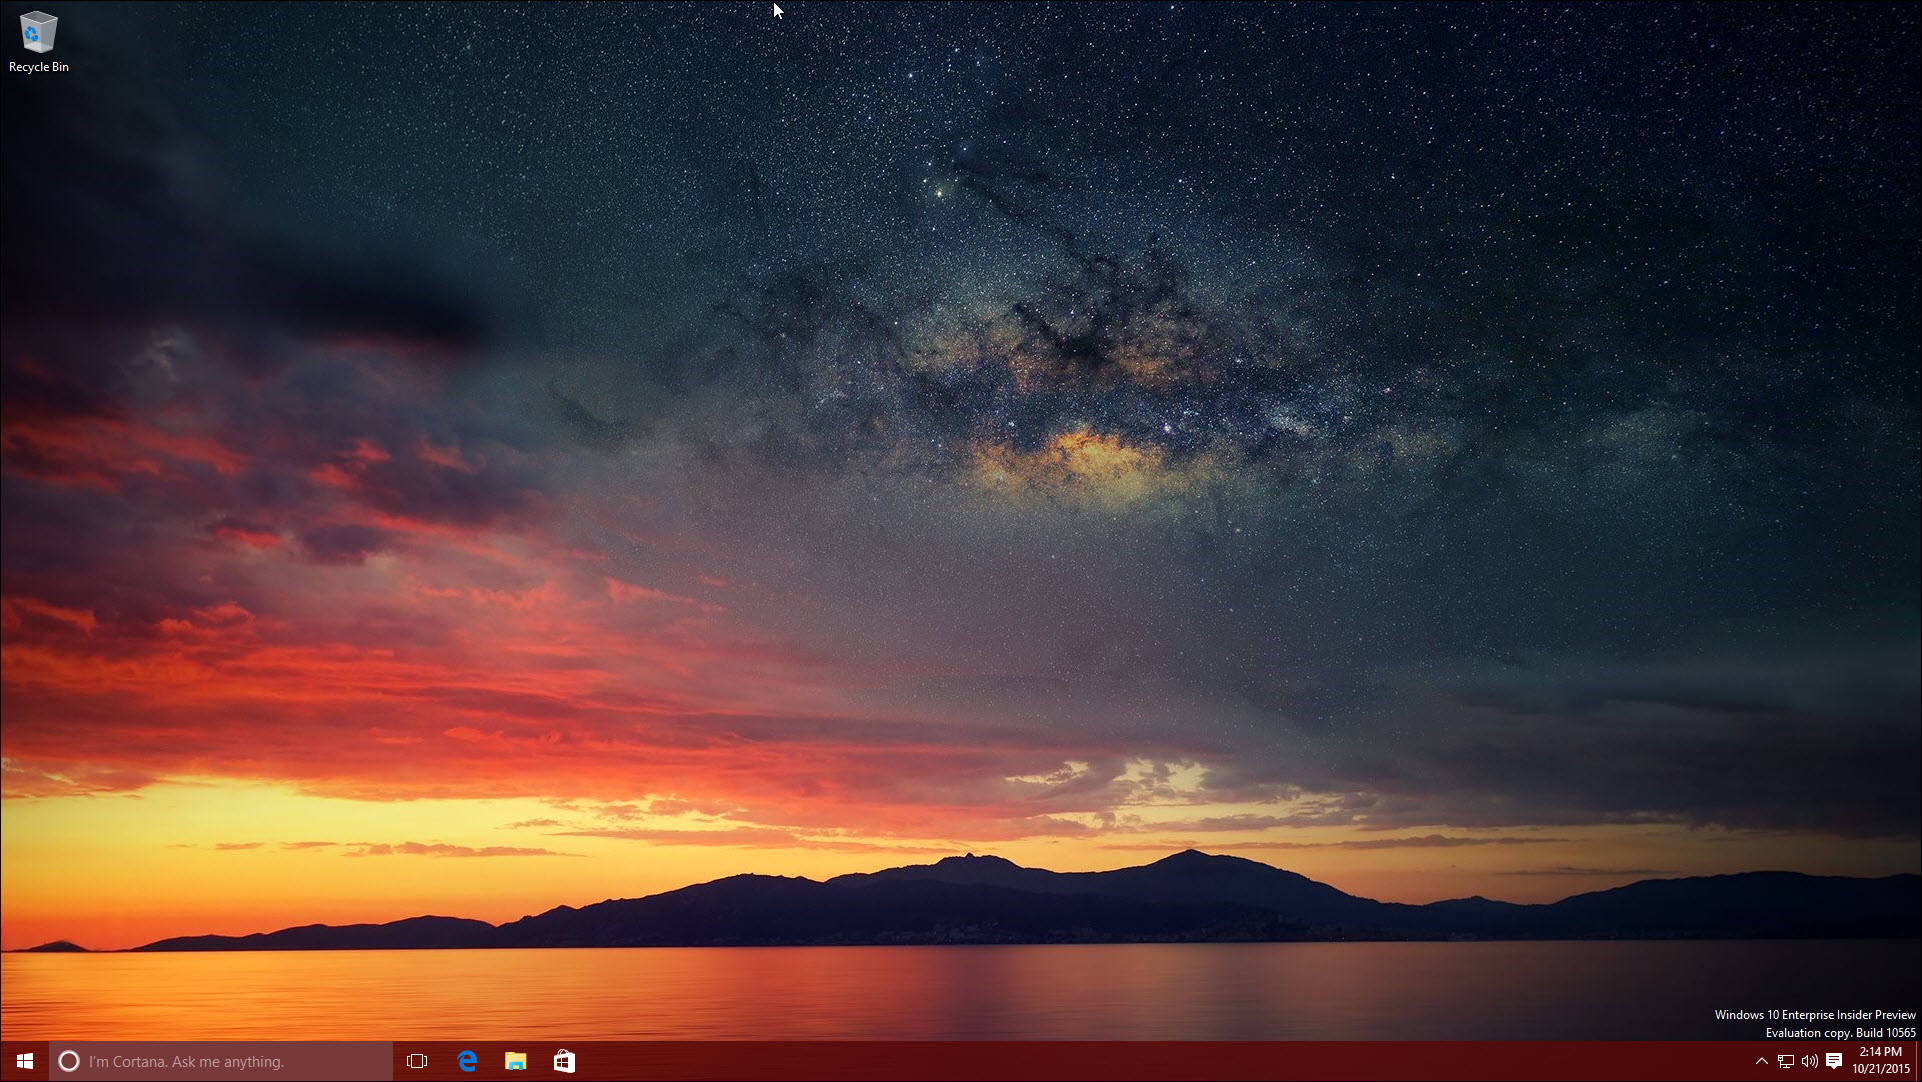 The Windows 10 desktop